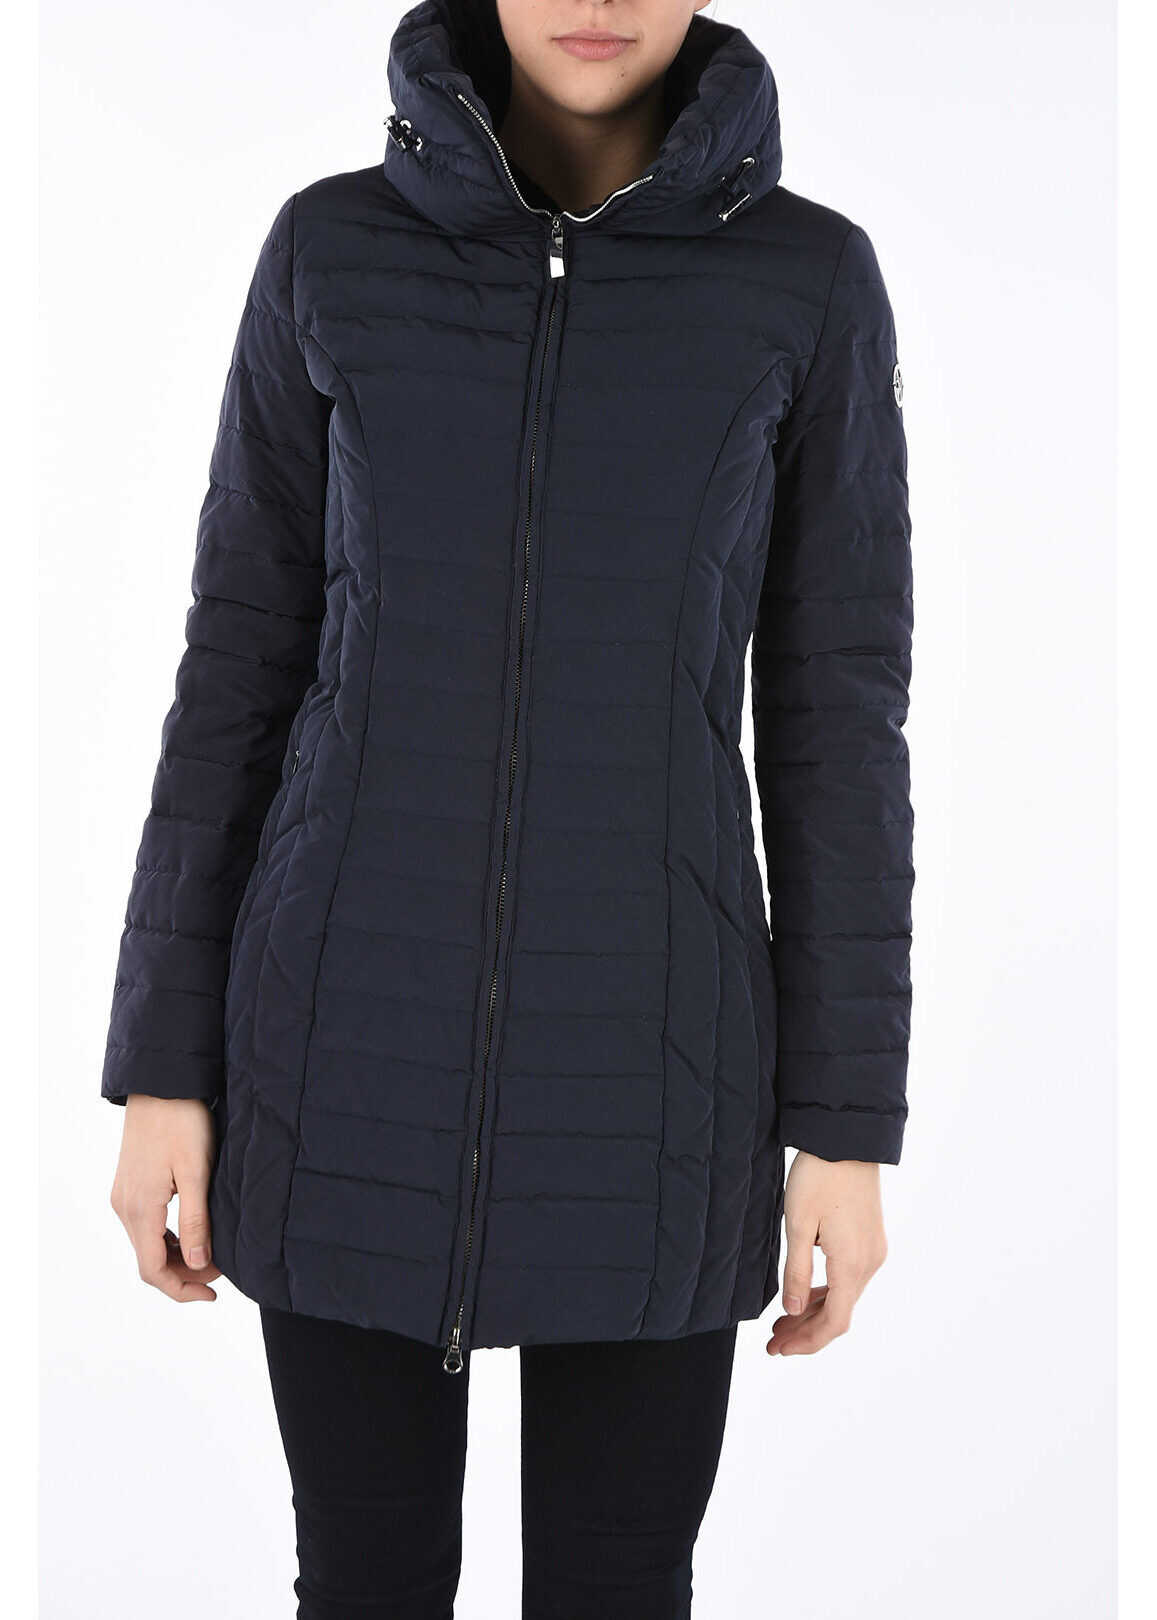 Armani ARMANI JEANS Long Down Padded Jacket BLUE